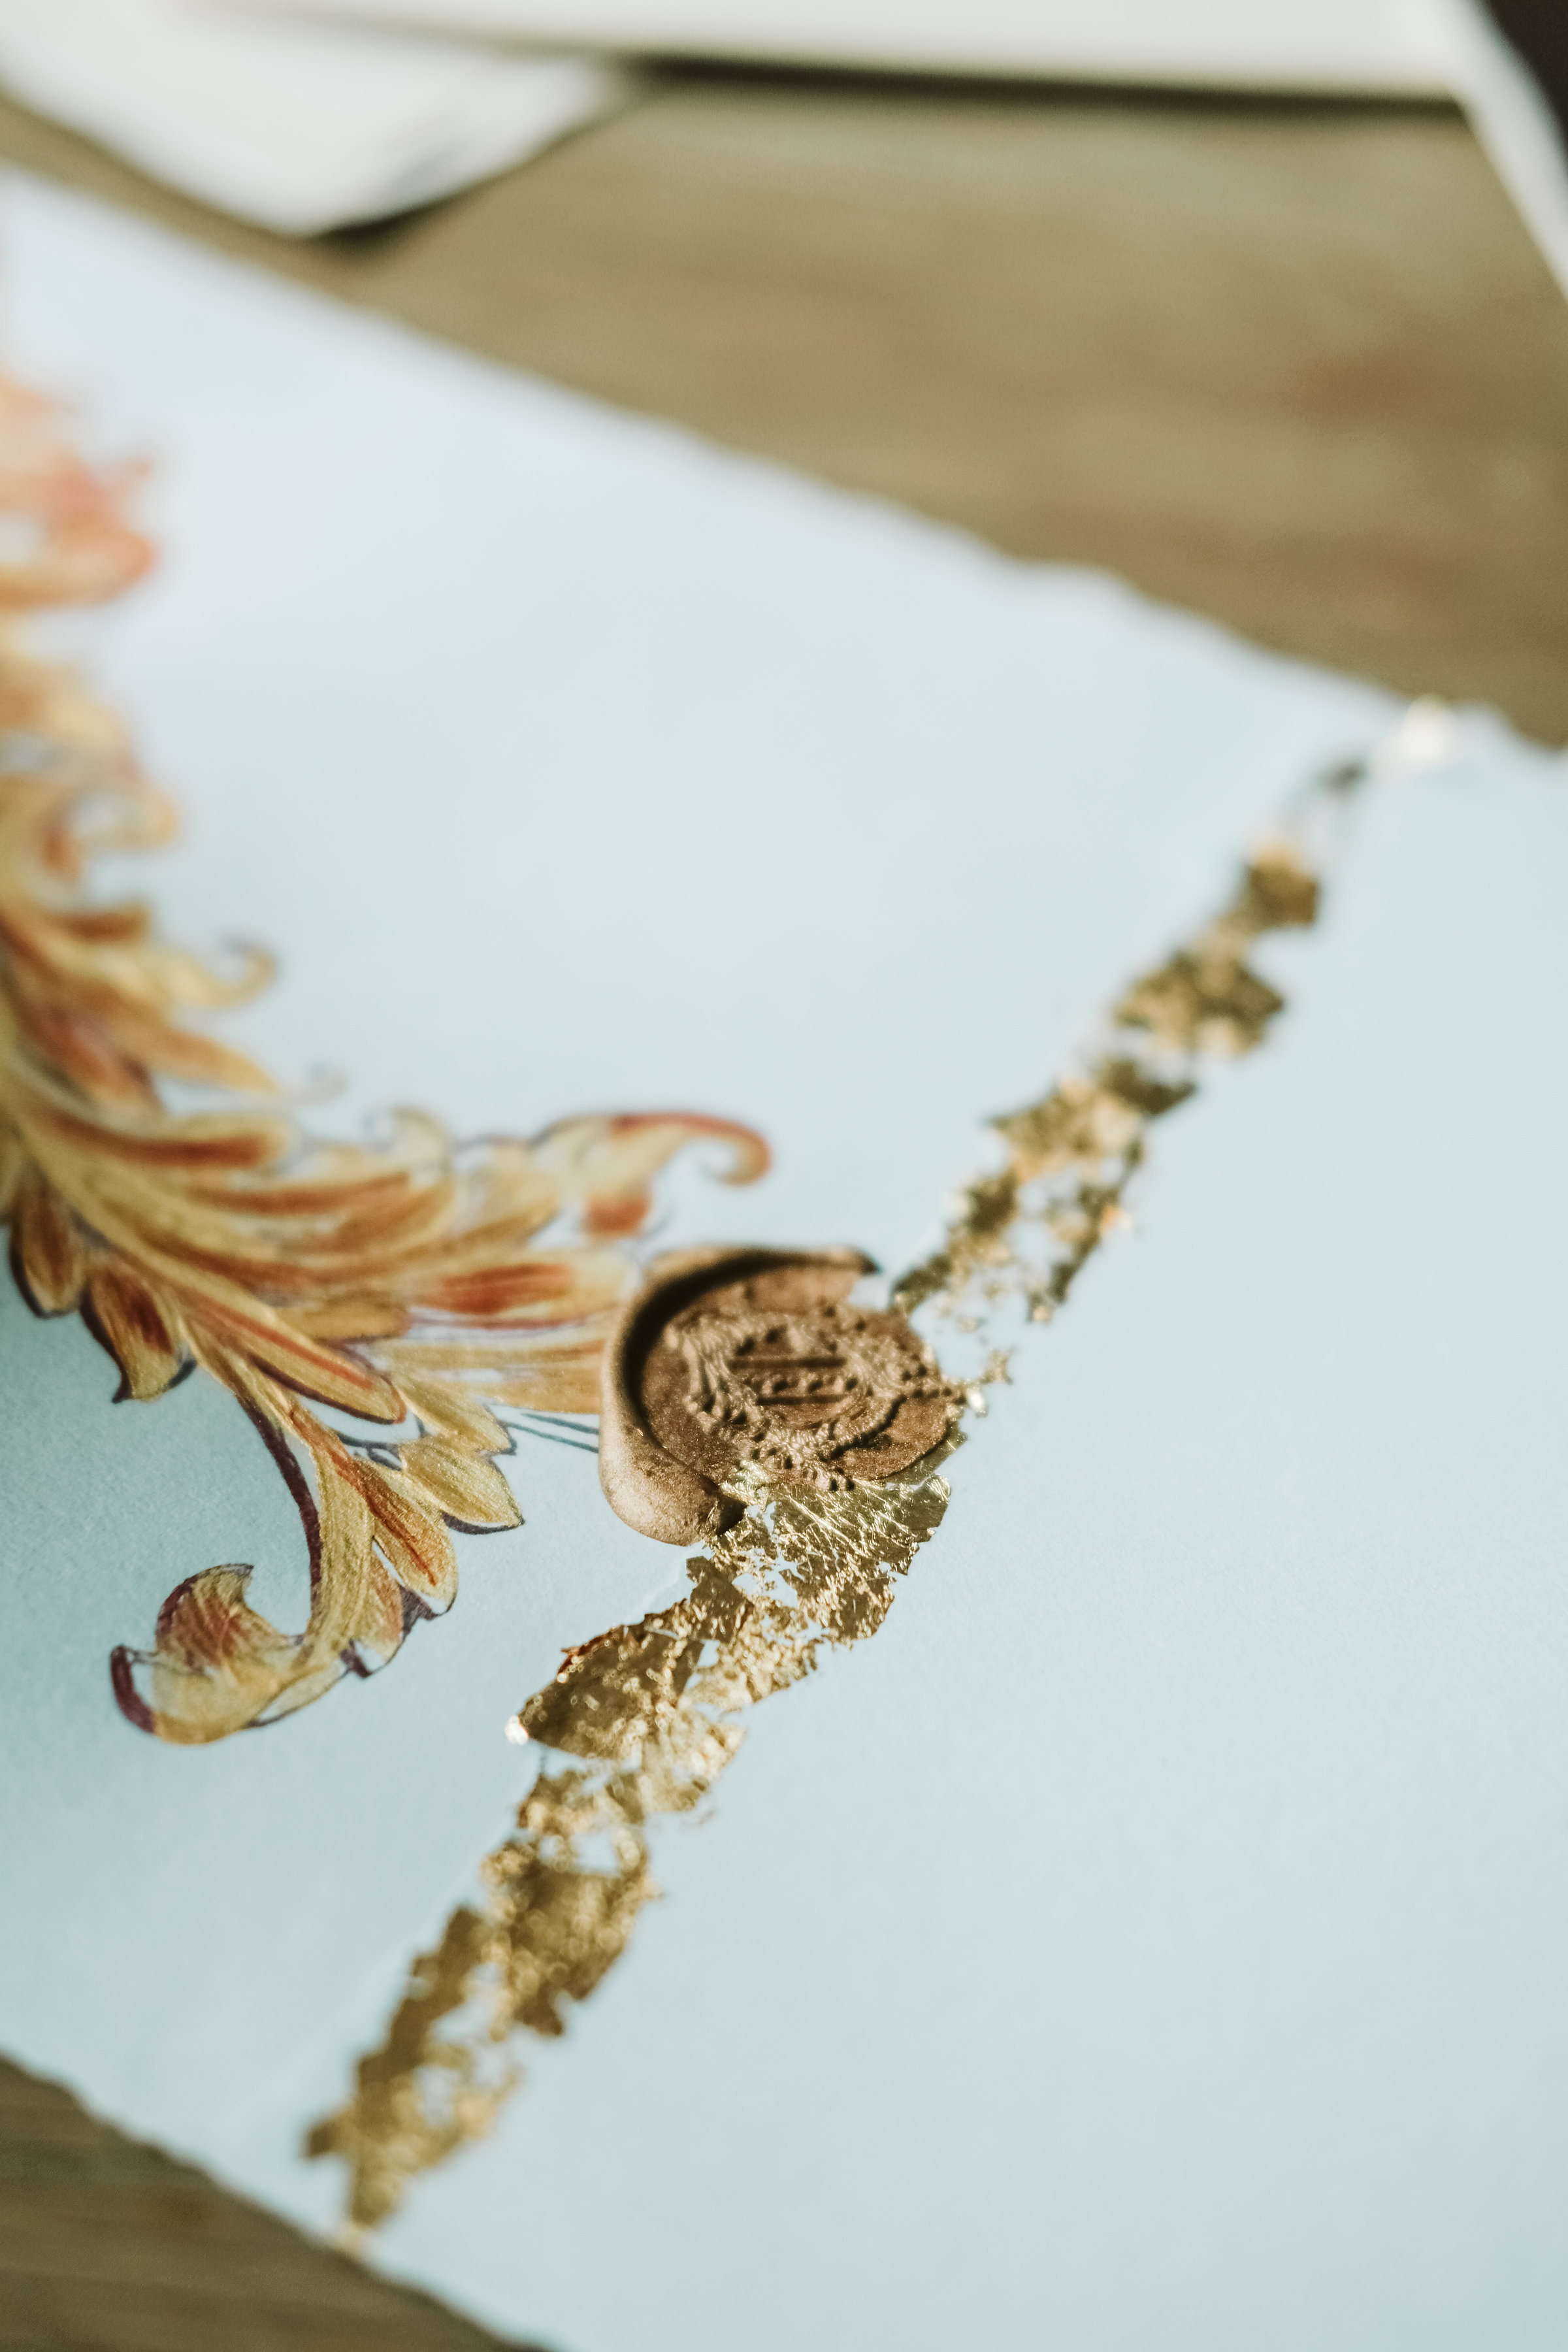 Illustrated wedding invitations showing a blue envelope with gold design